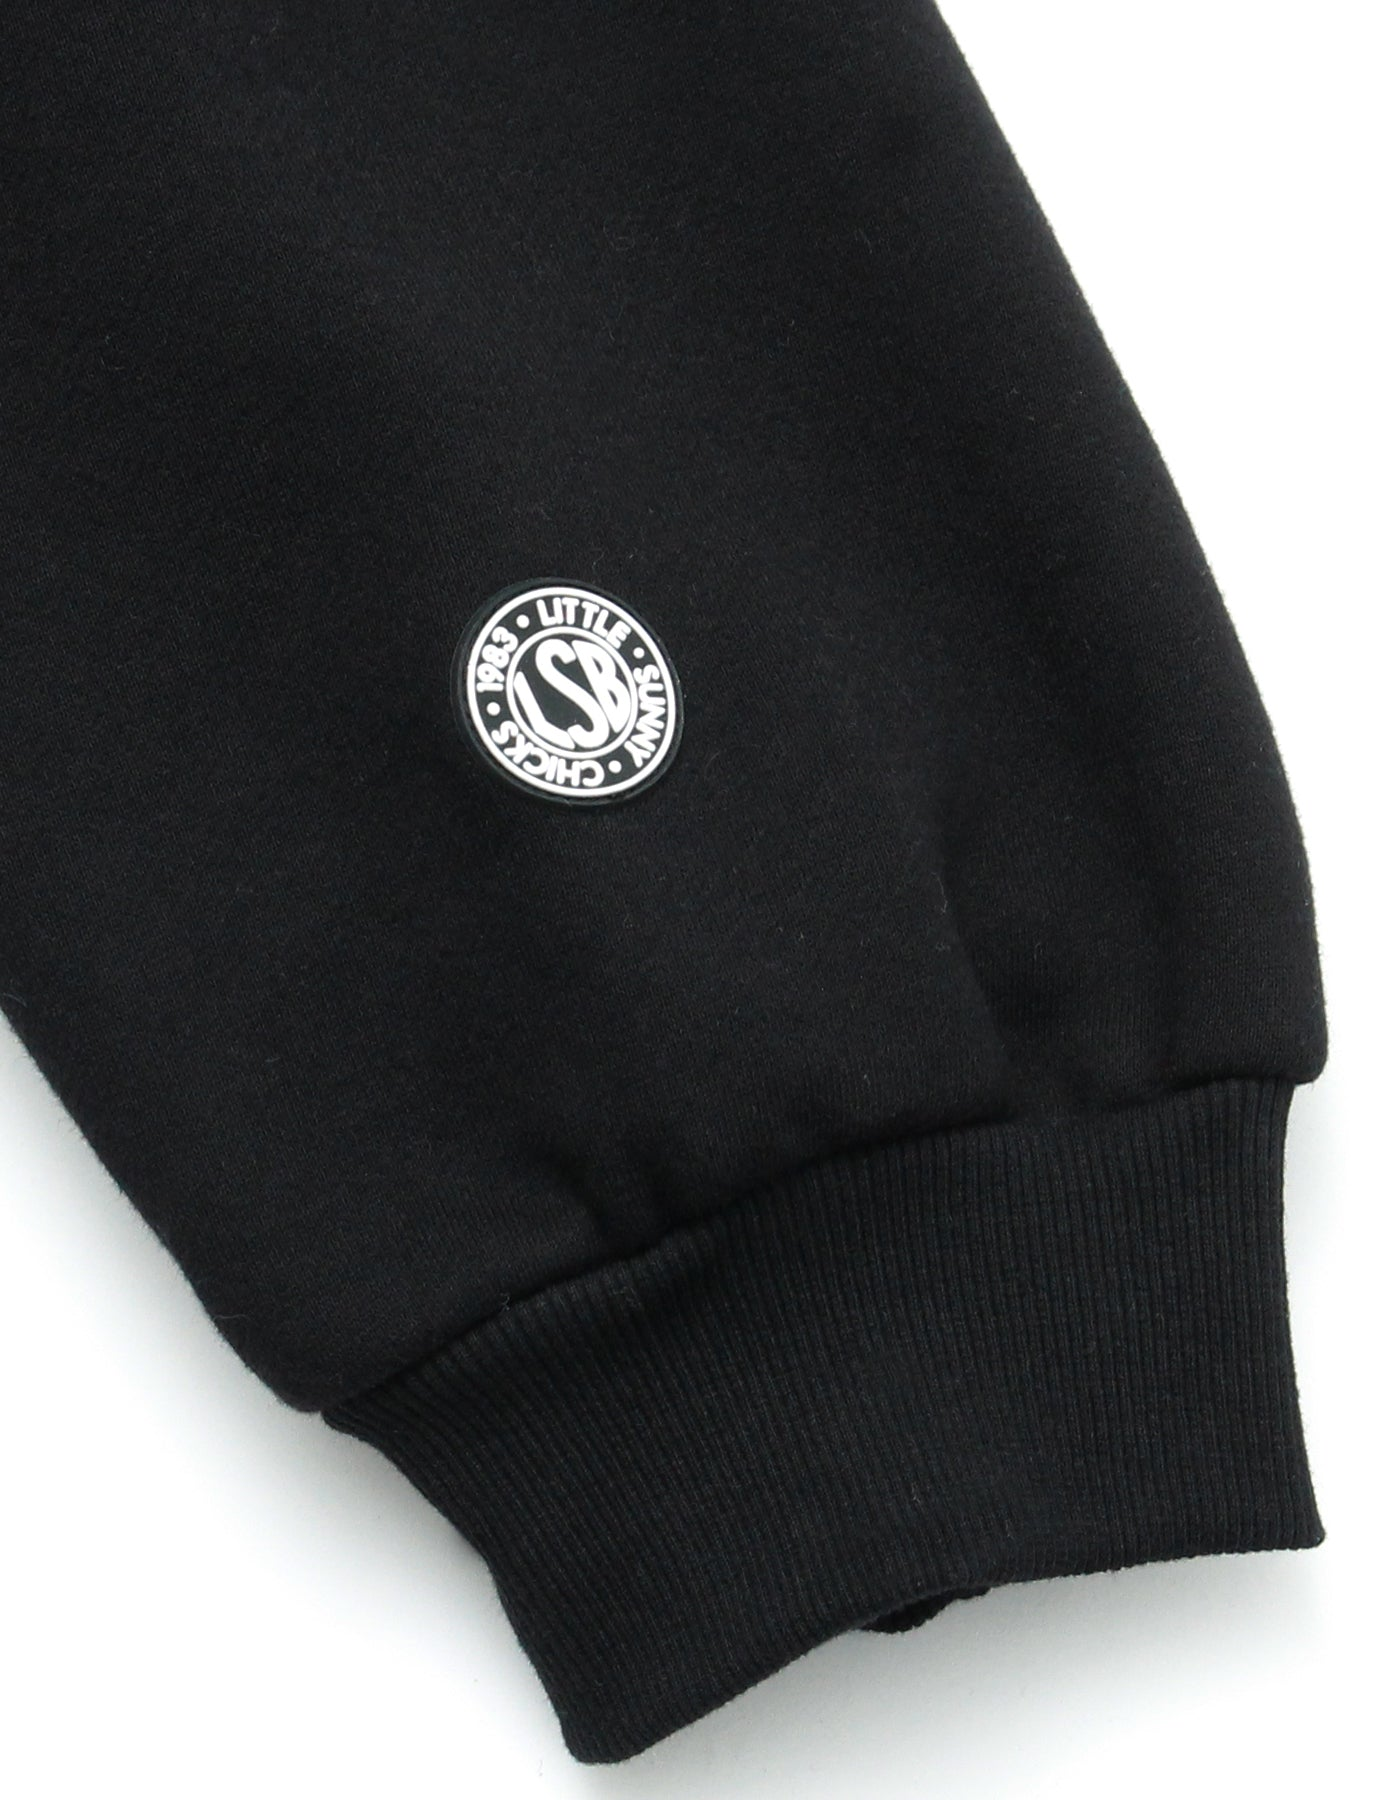 LSB sweat top / BLACK